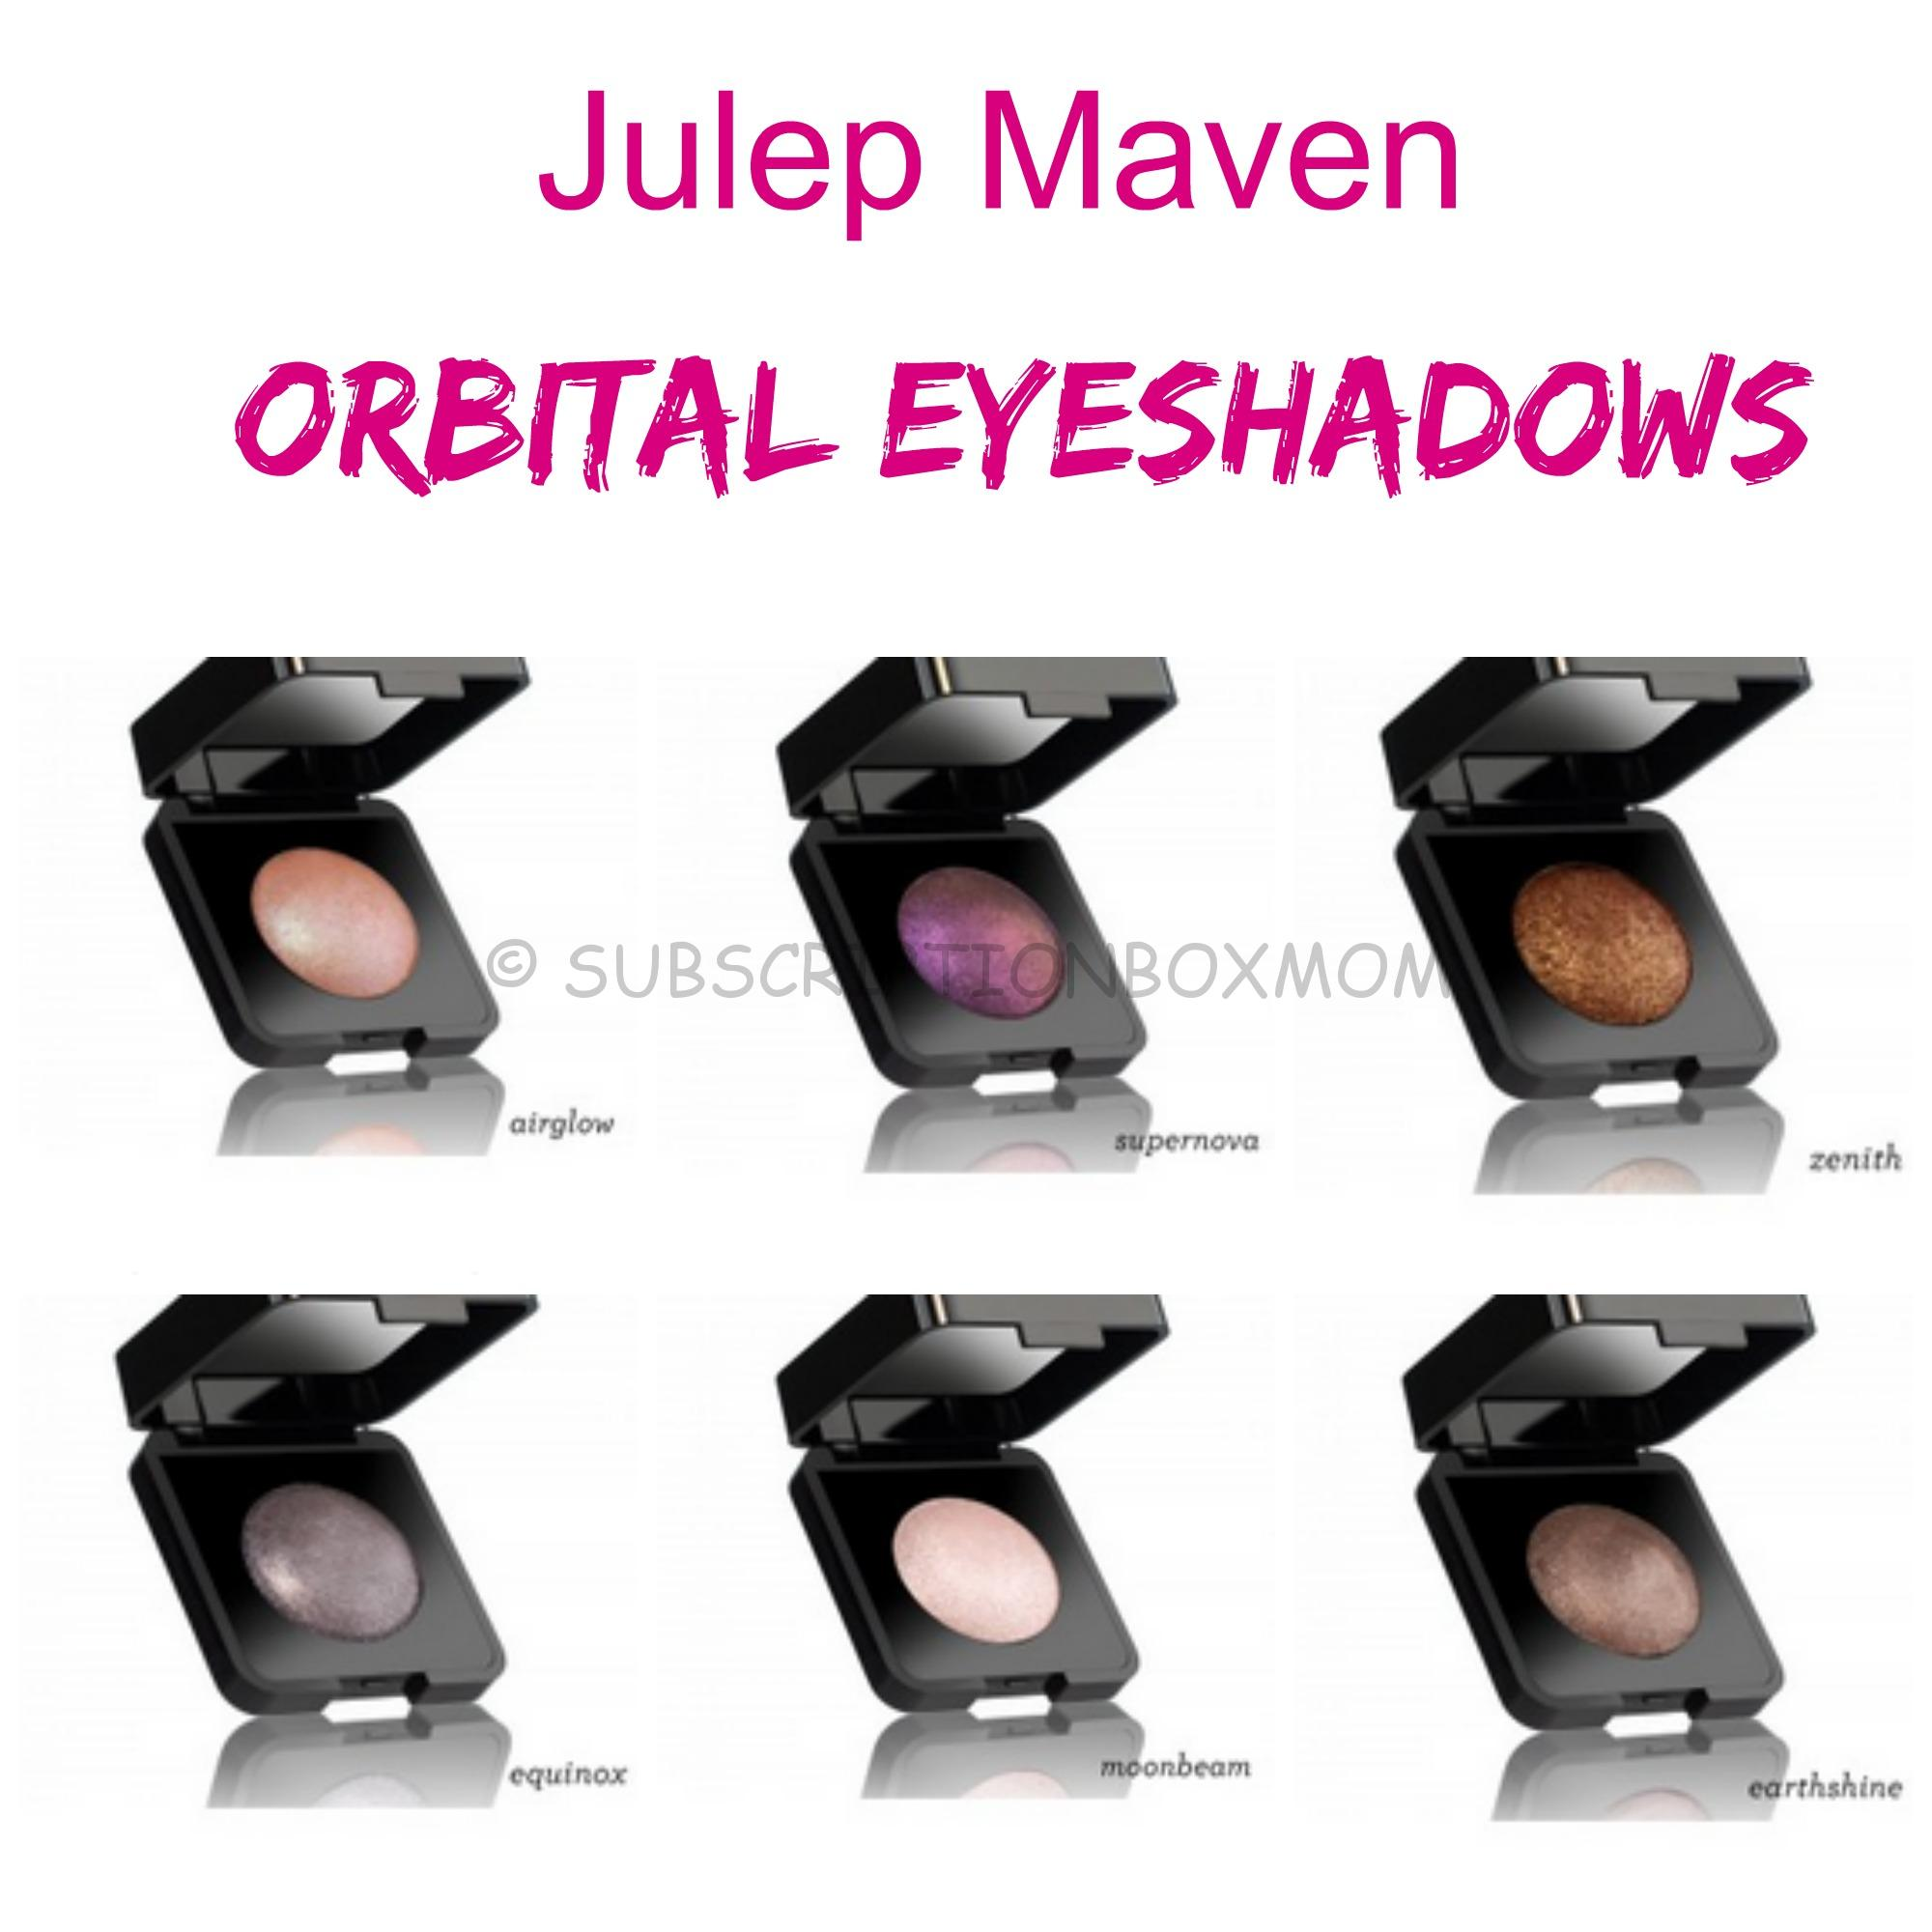 orbital eyeshadows